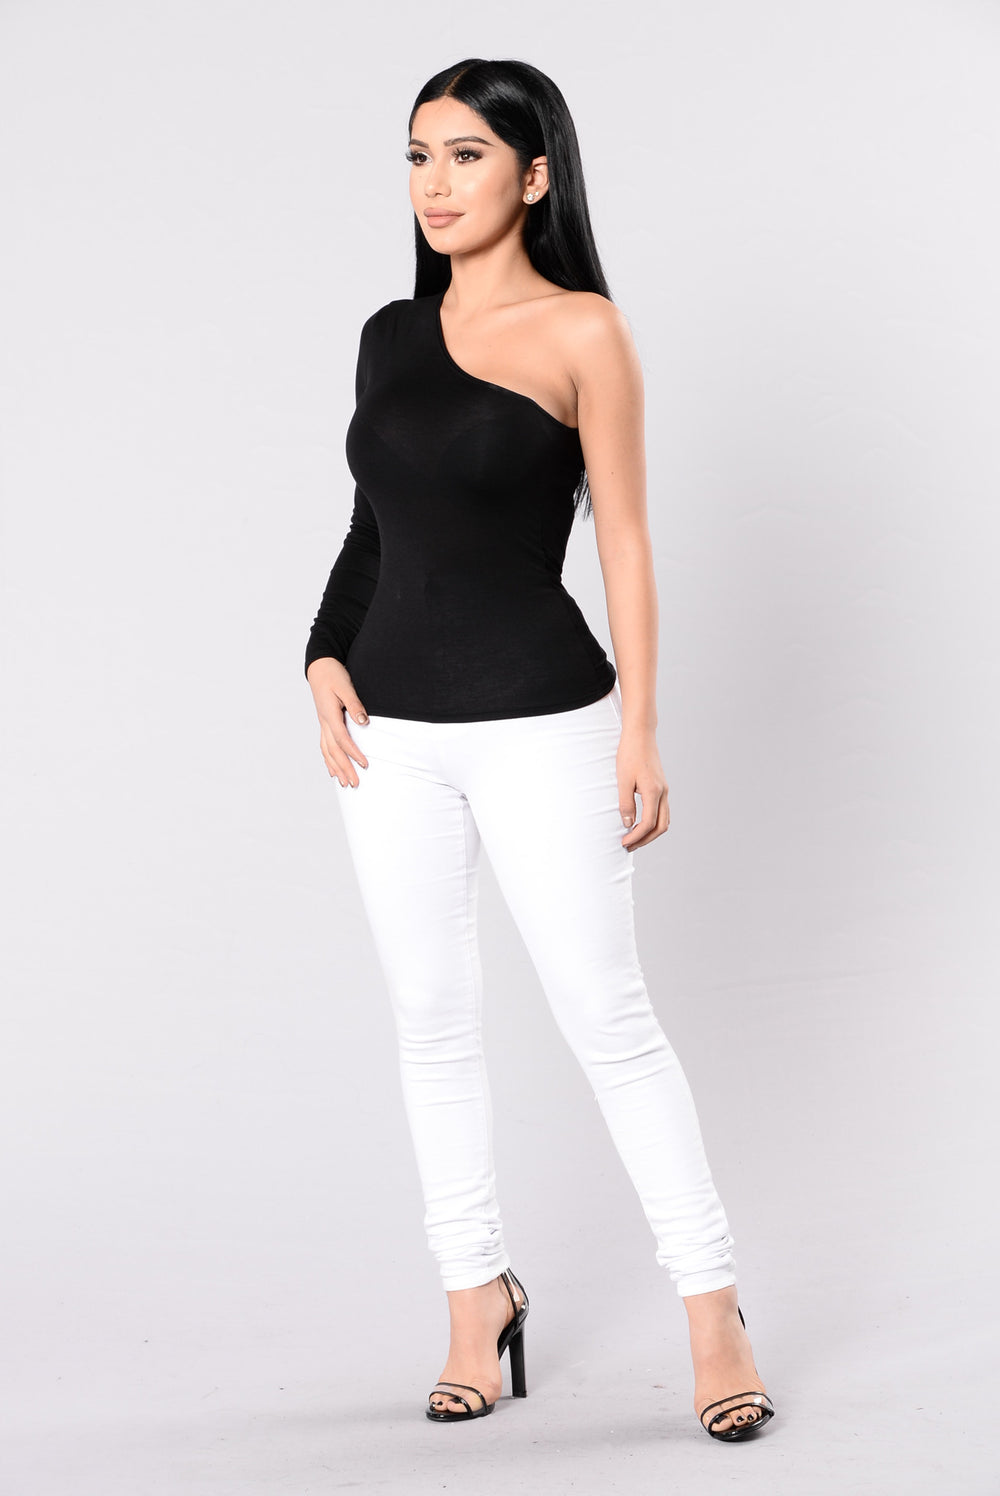 Picture This Top - Black